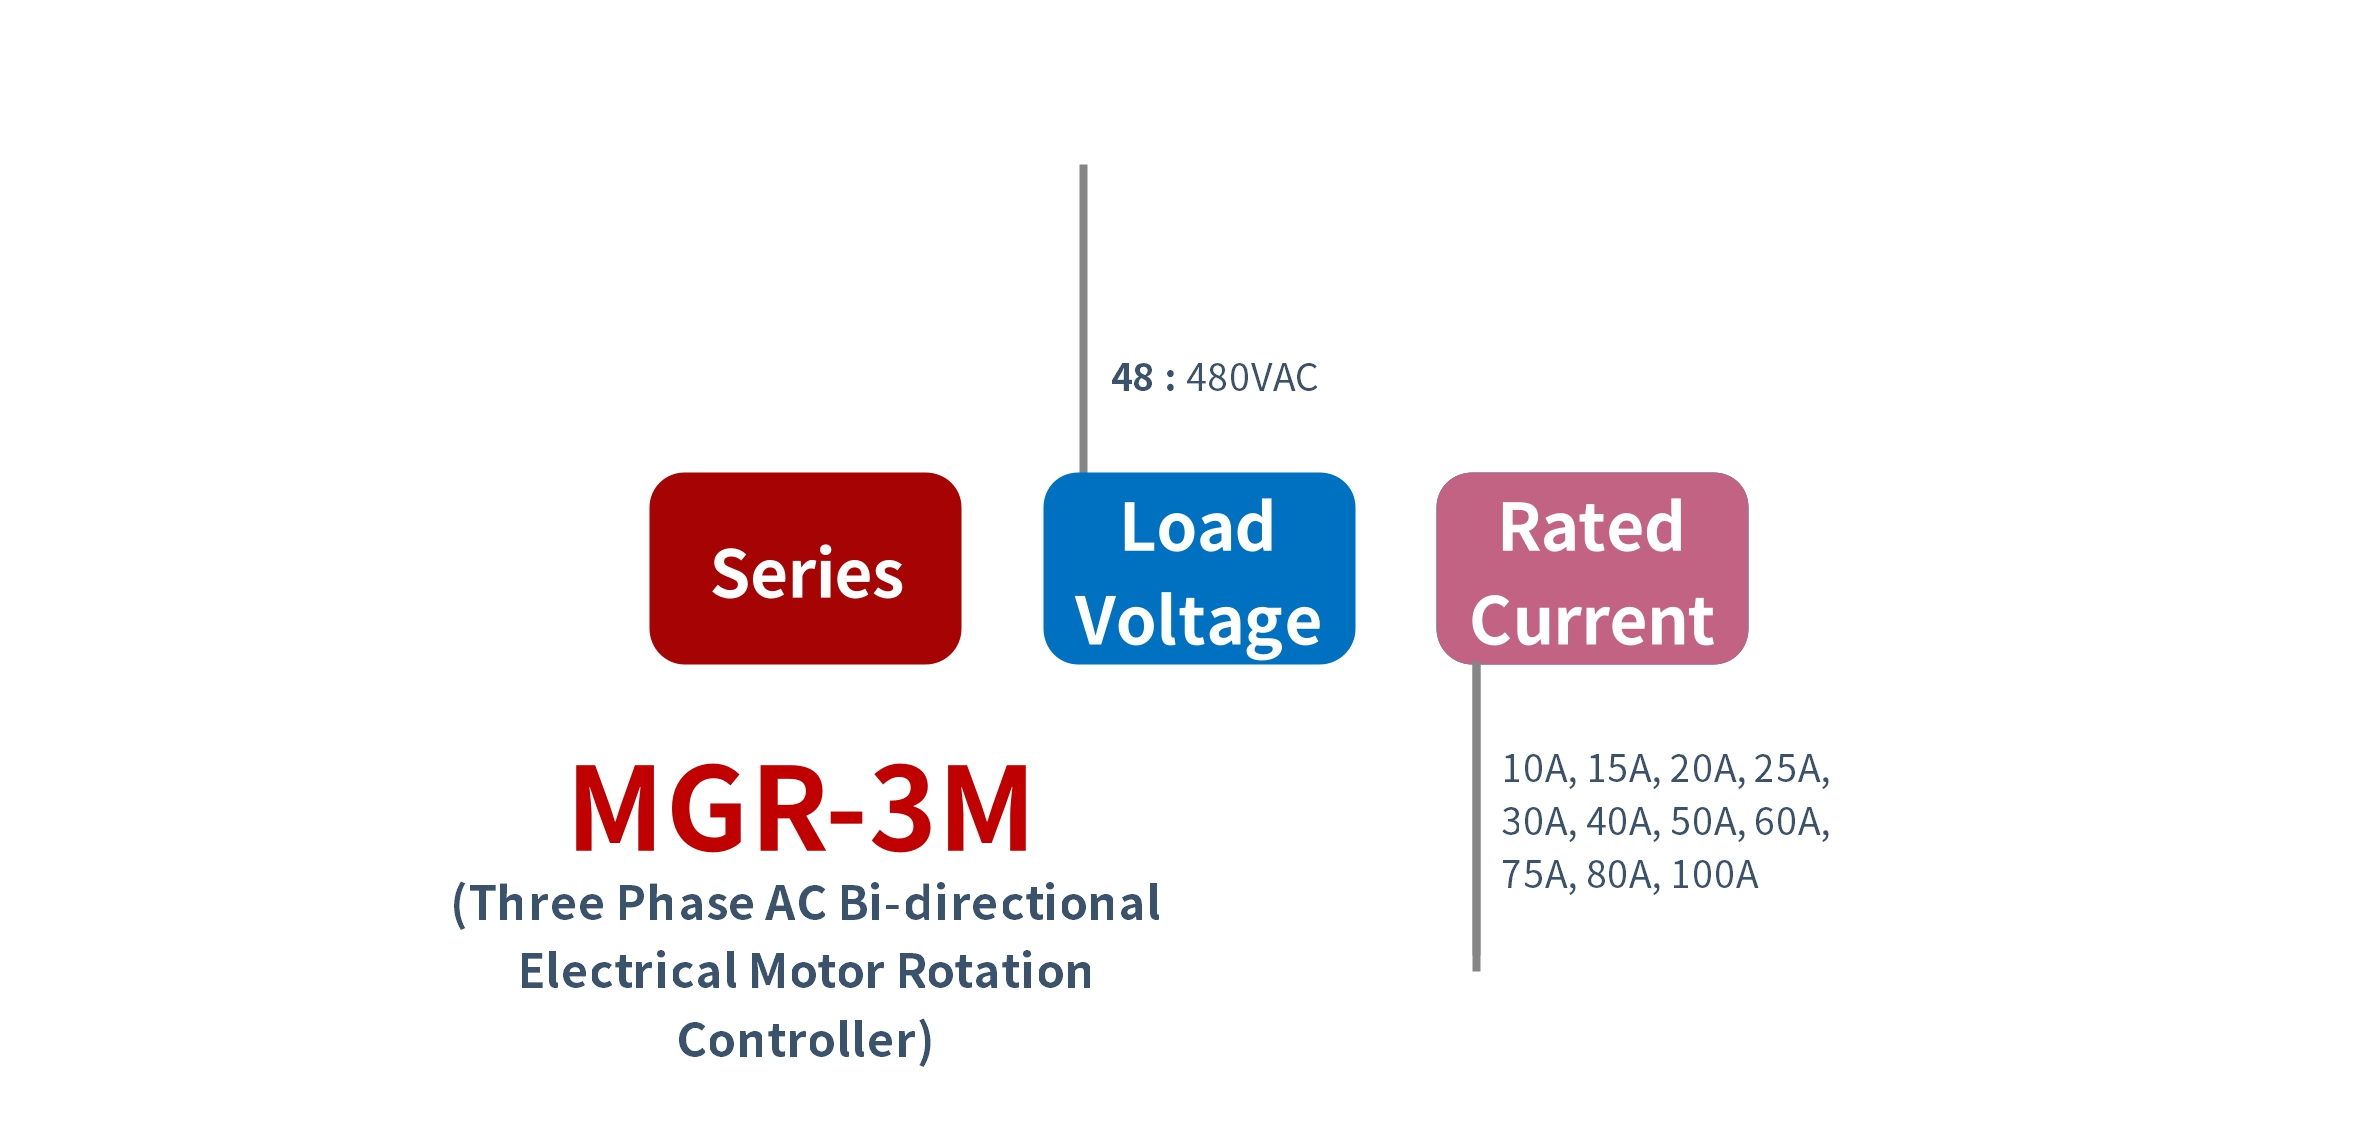 How to order MGR-3M Series Electrical Motor Controller